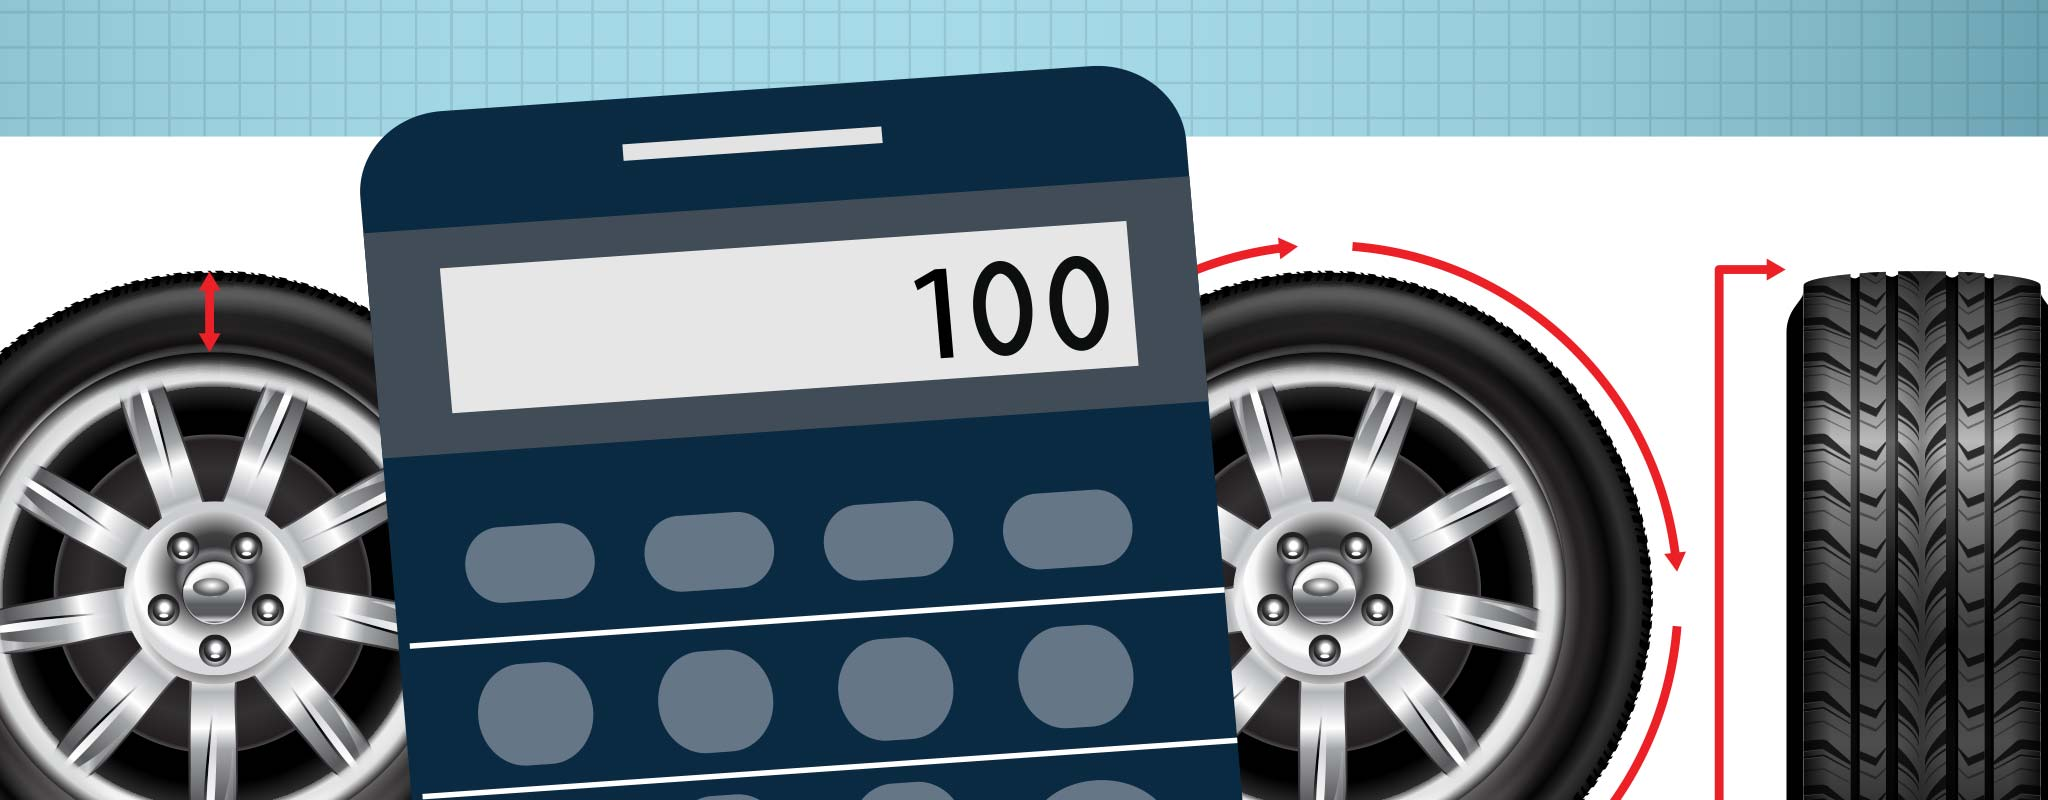 Calculator and tire illustration.